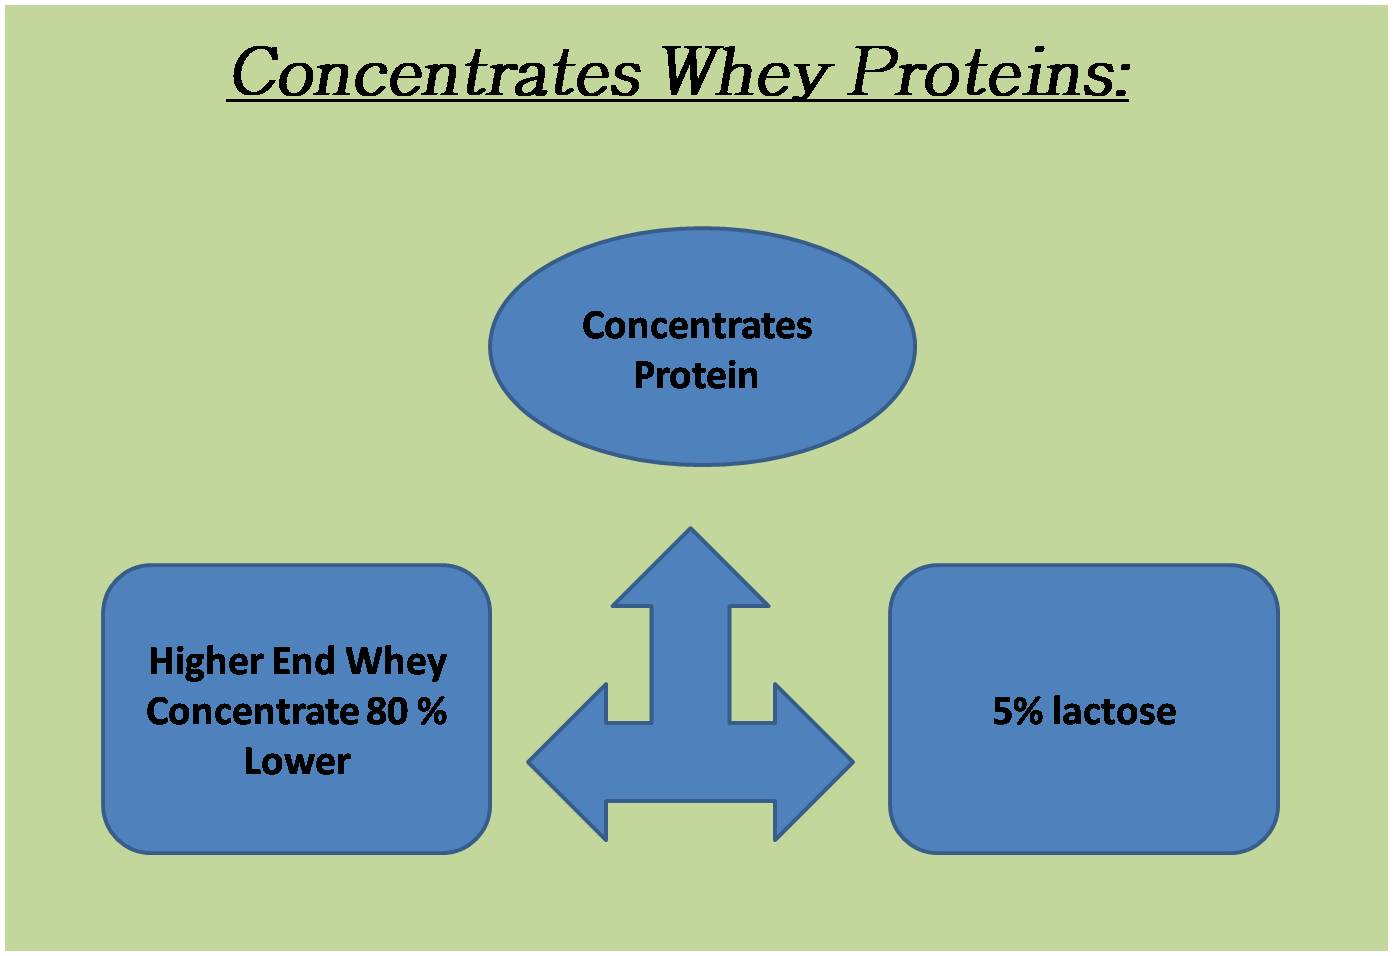 Concentrates Whey Proteins